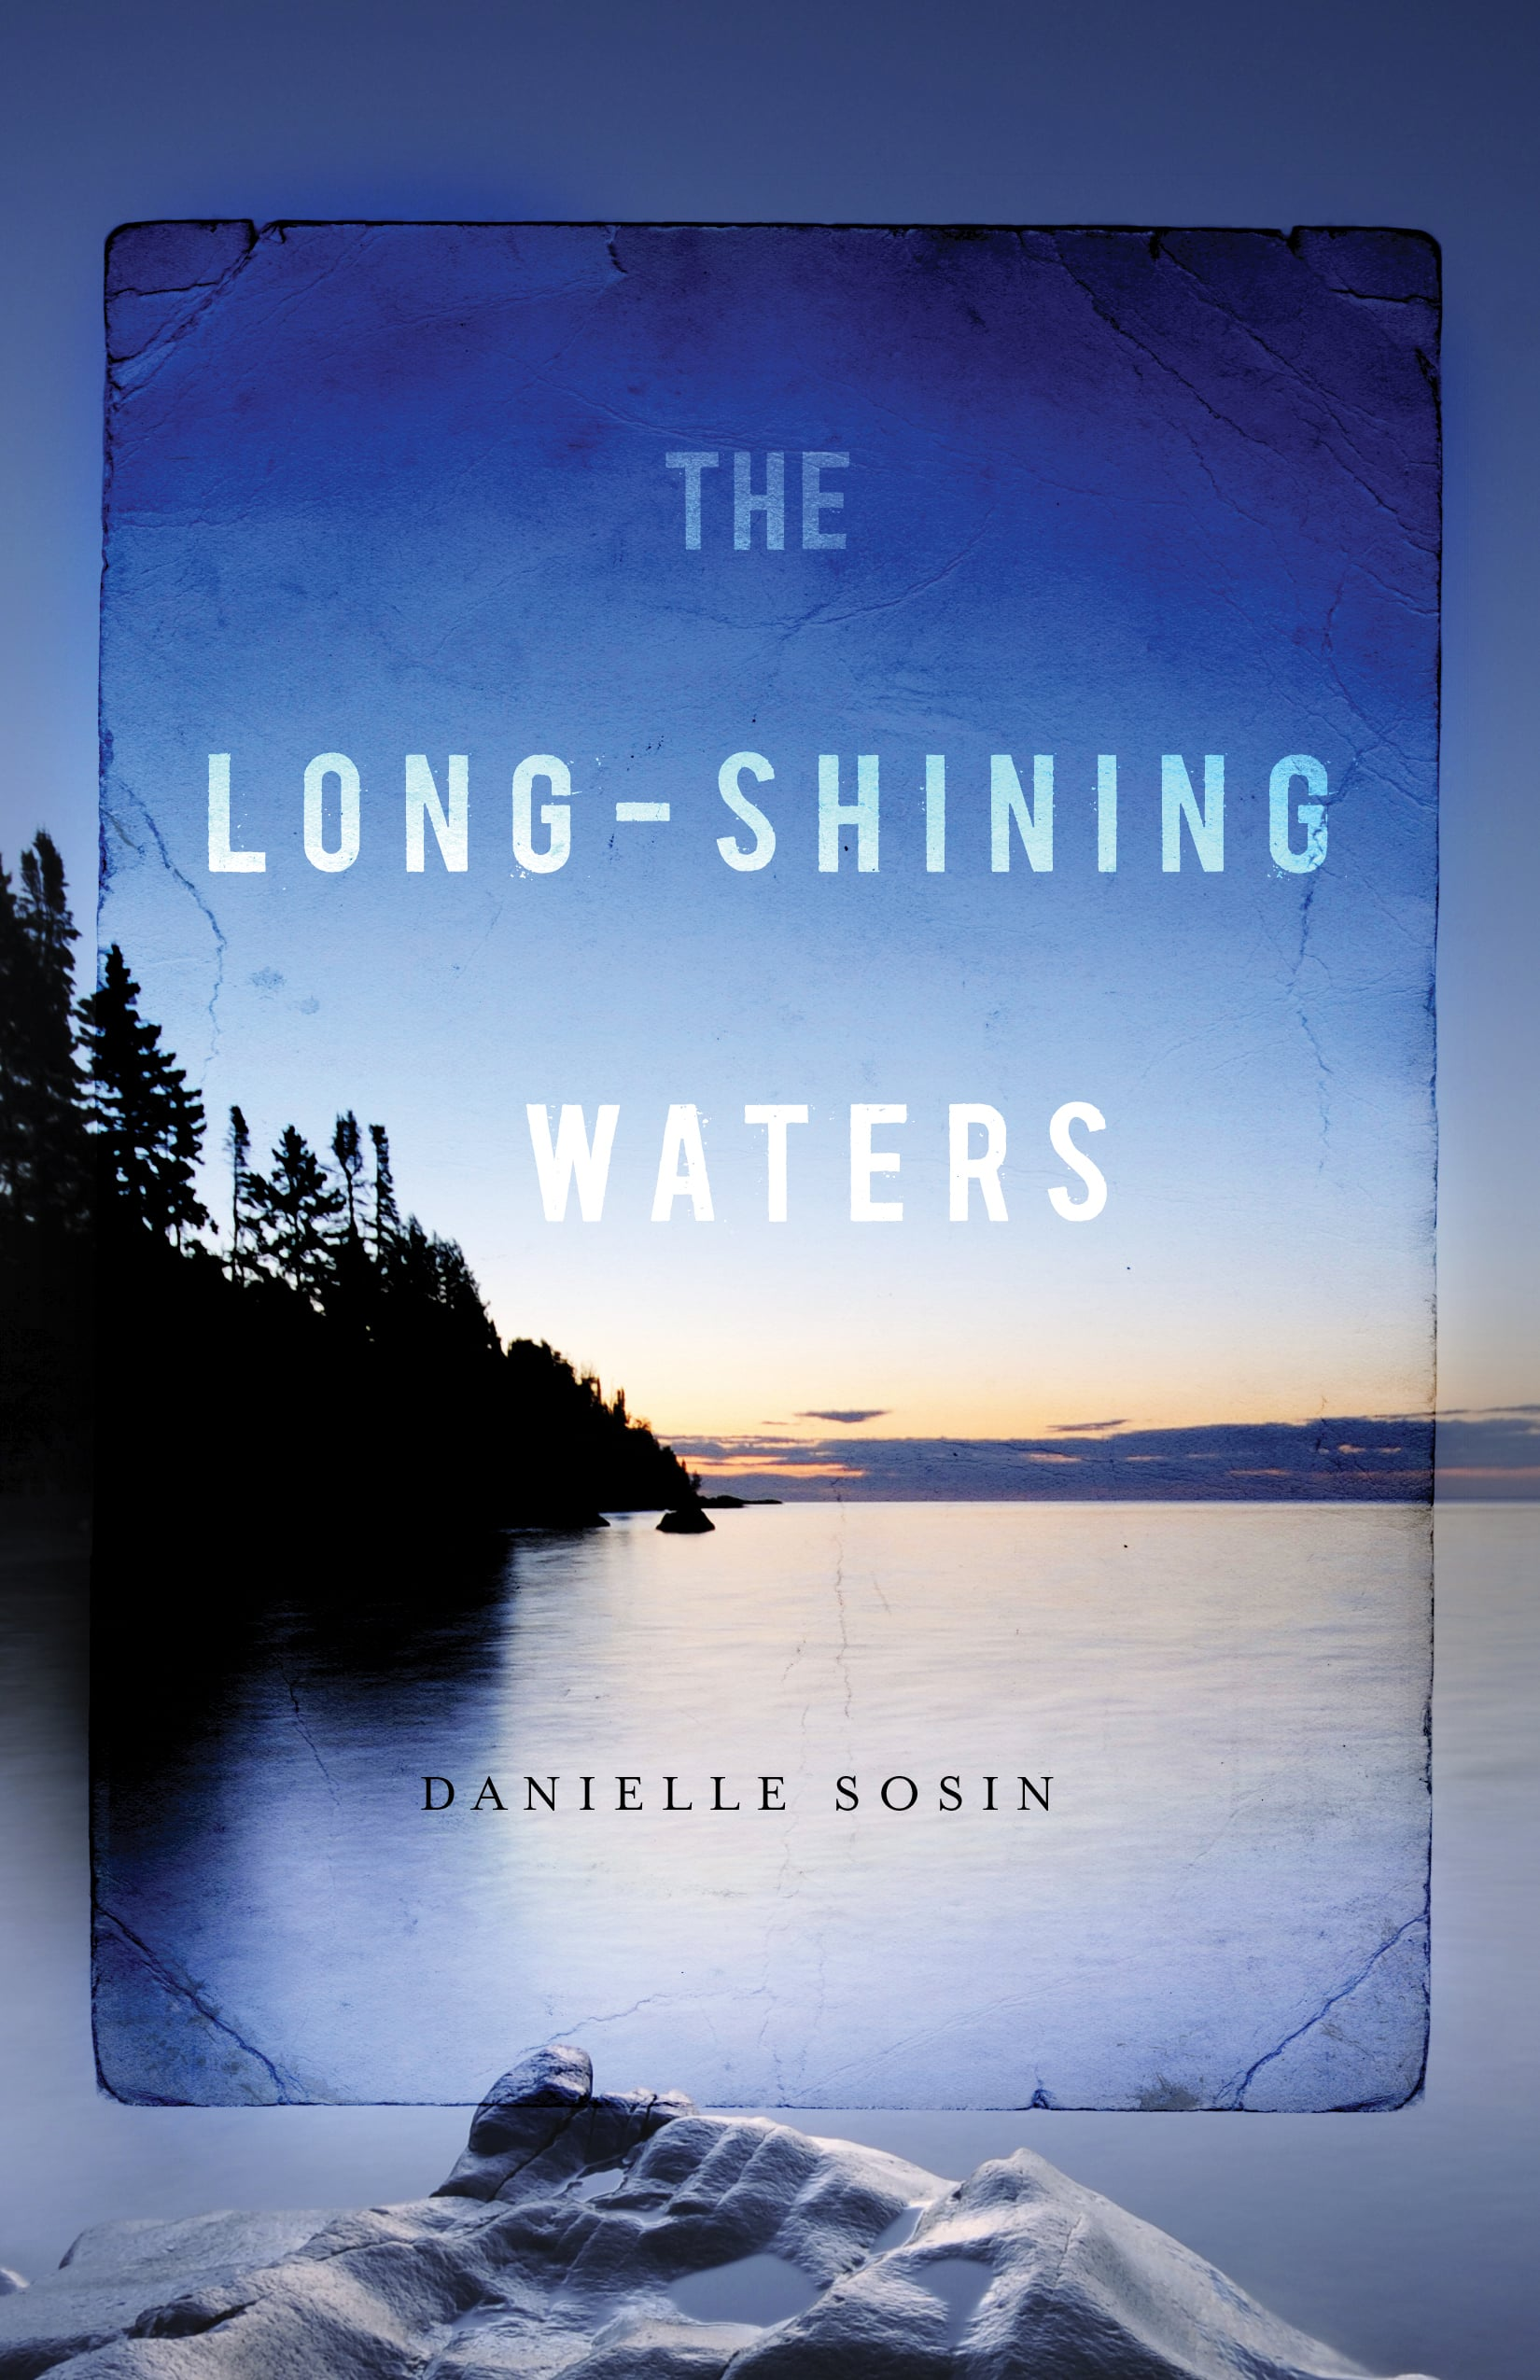 Minnesota: The Long-Shining Waters by Danielle Sosin